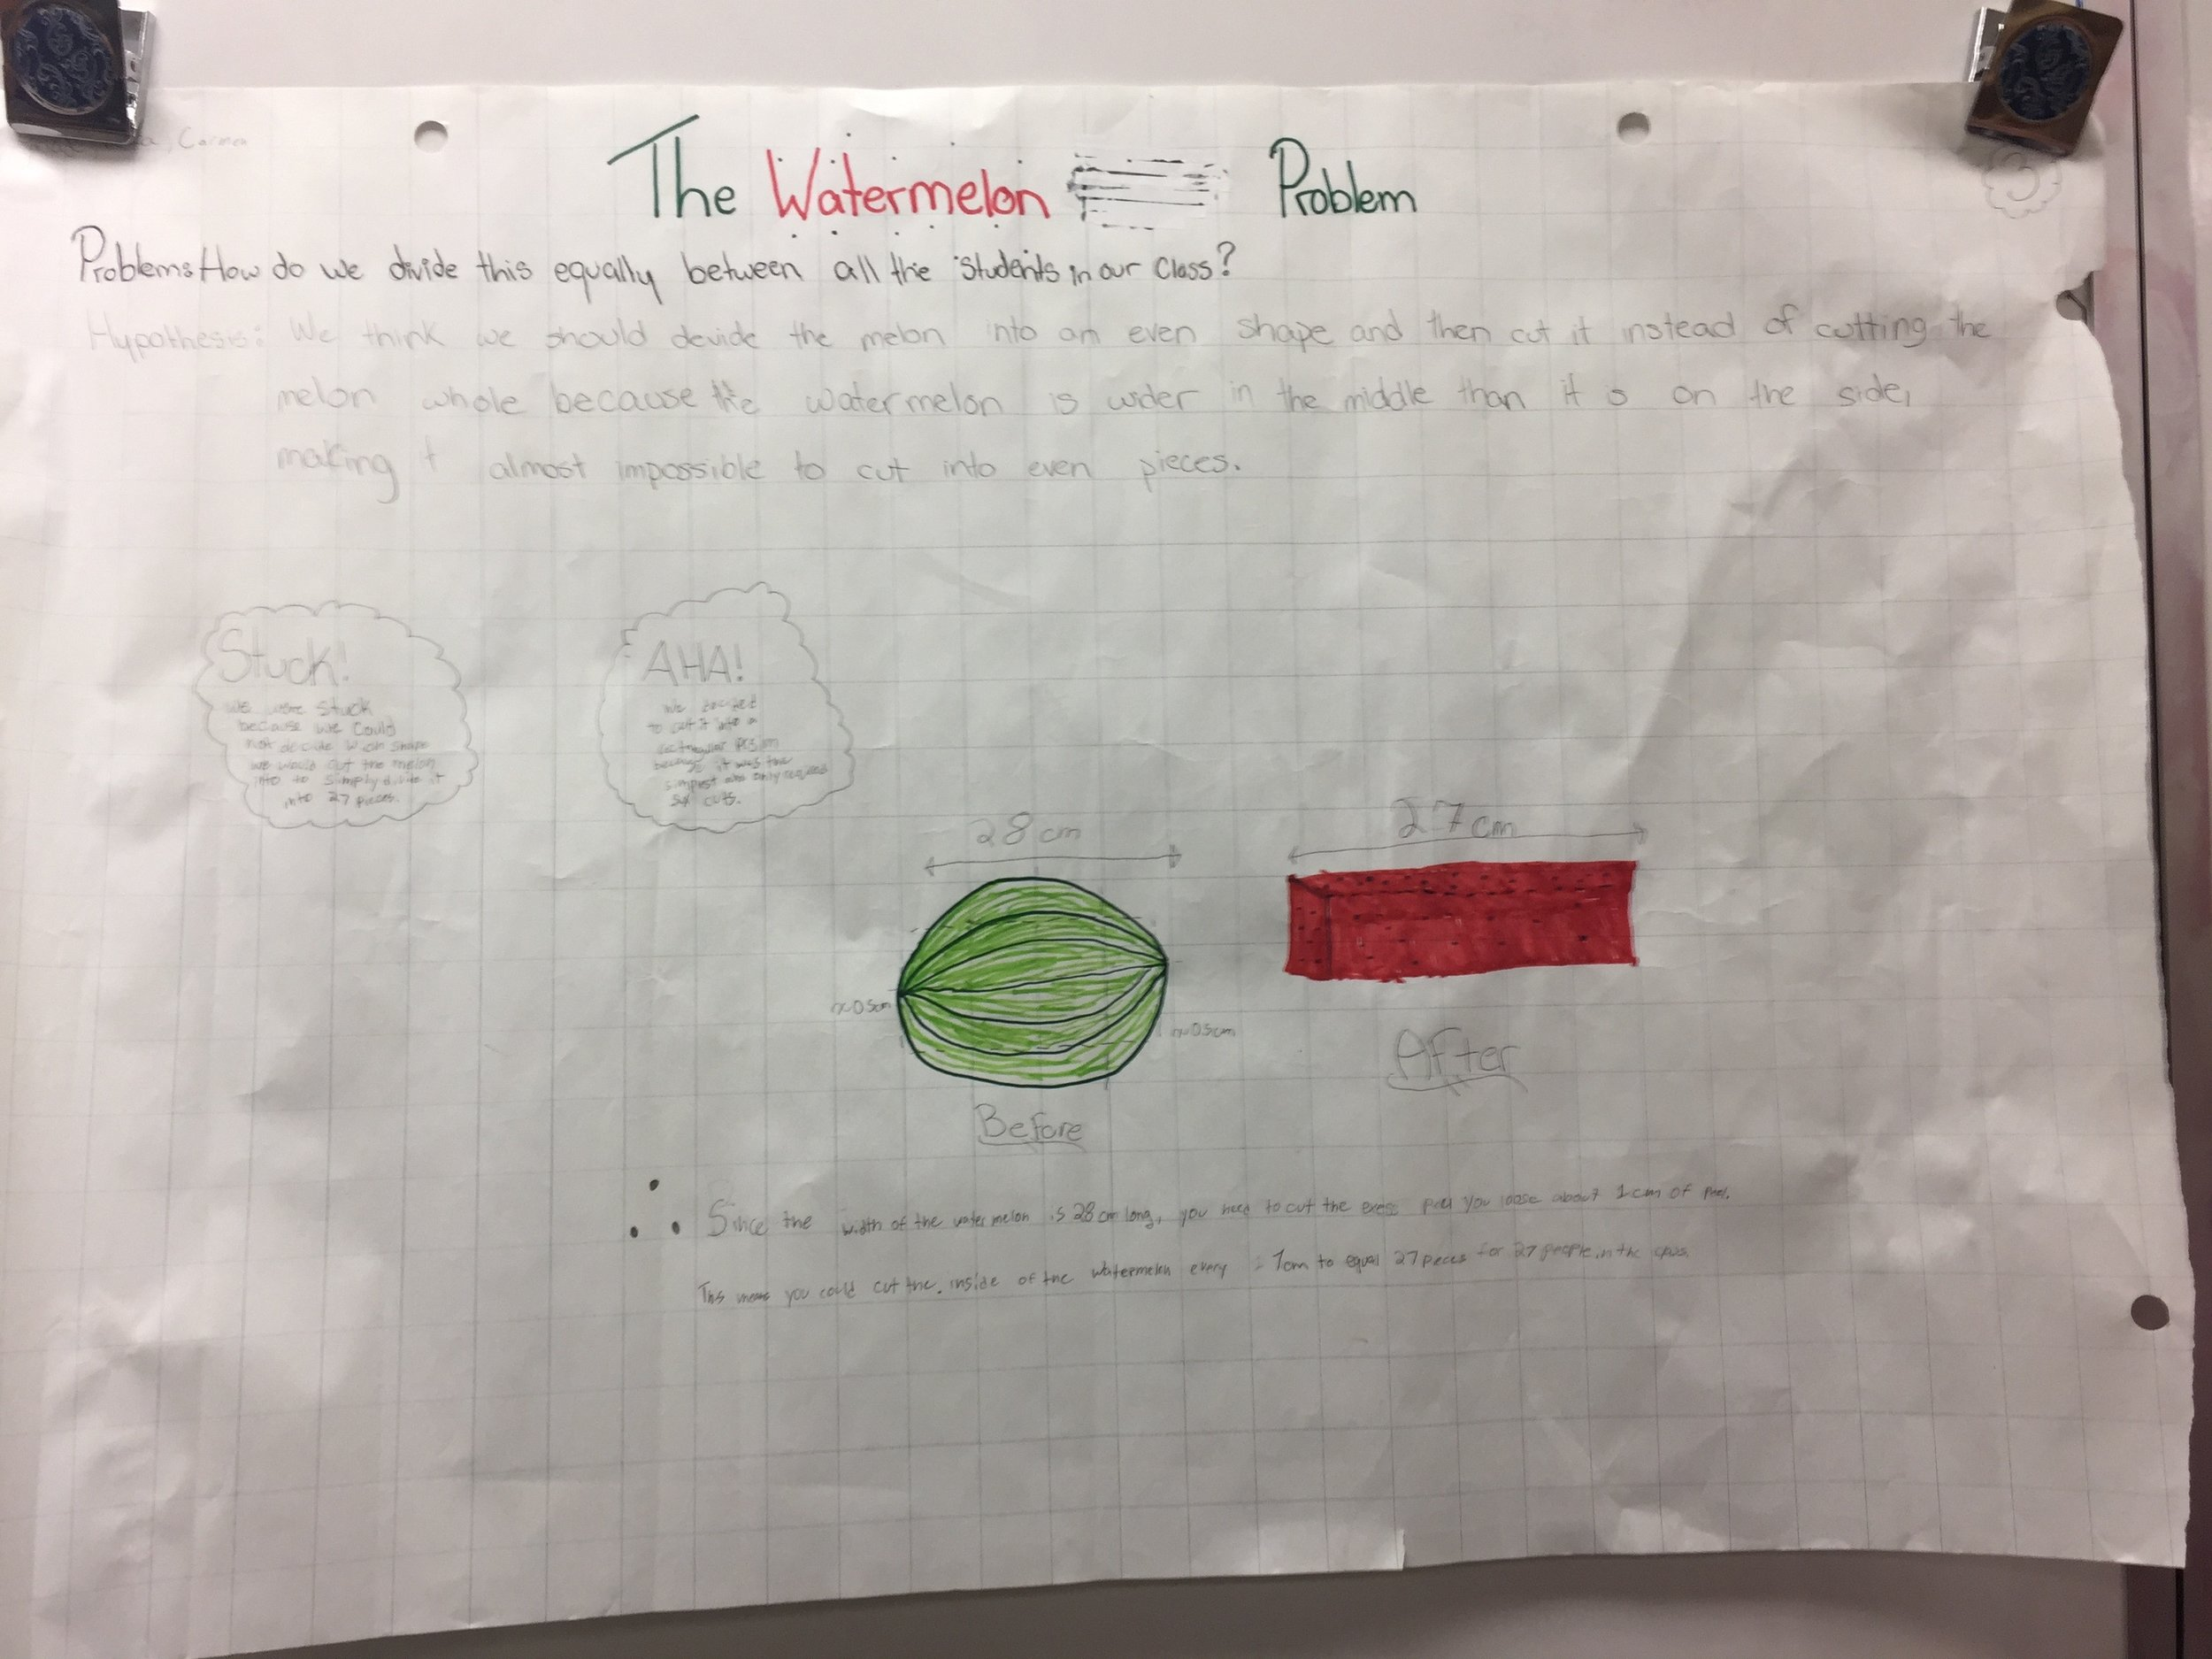 2016-09-14-the-watermelon-problem-student-solutions-4.jpg